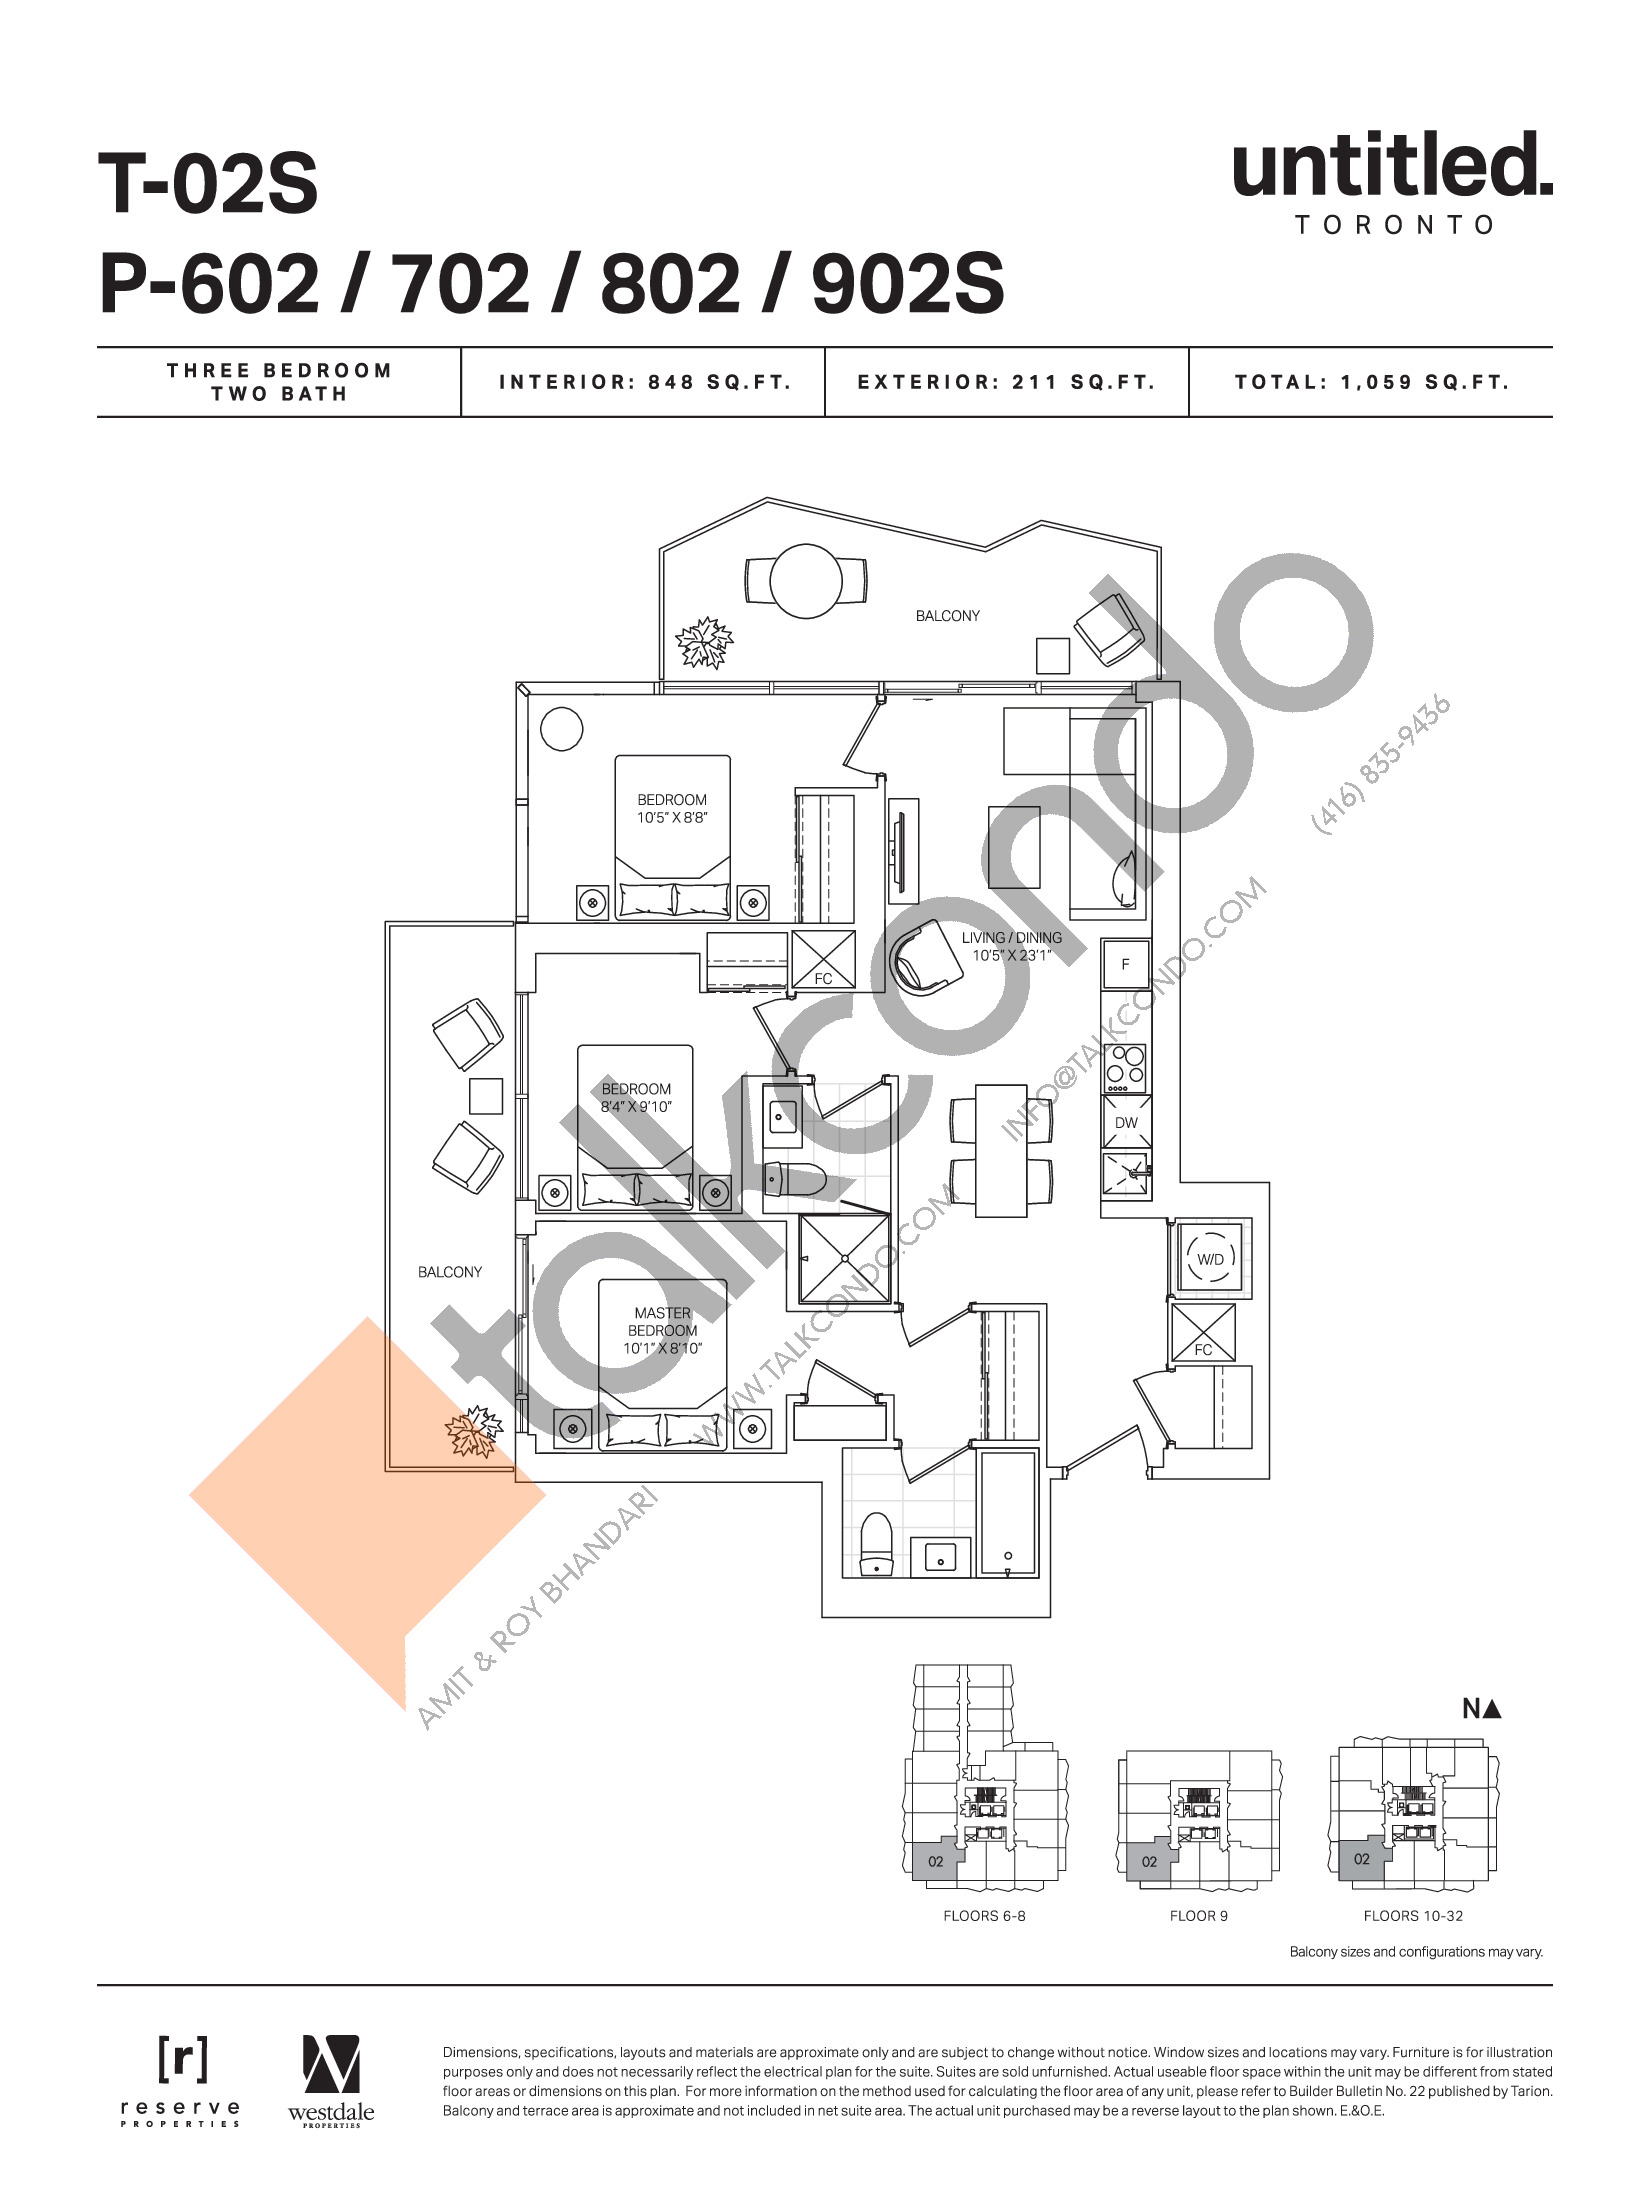 T-02S / P-602 / 702 / 802 / 902S Floor Plan at Untitled Toronto Condos - 848 sq.ft